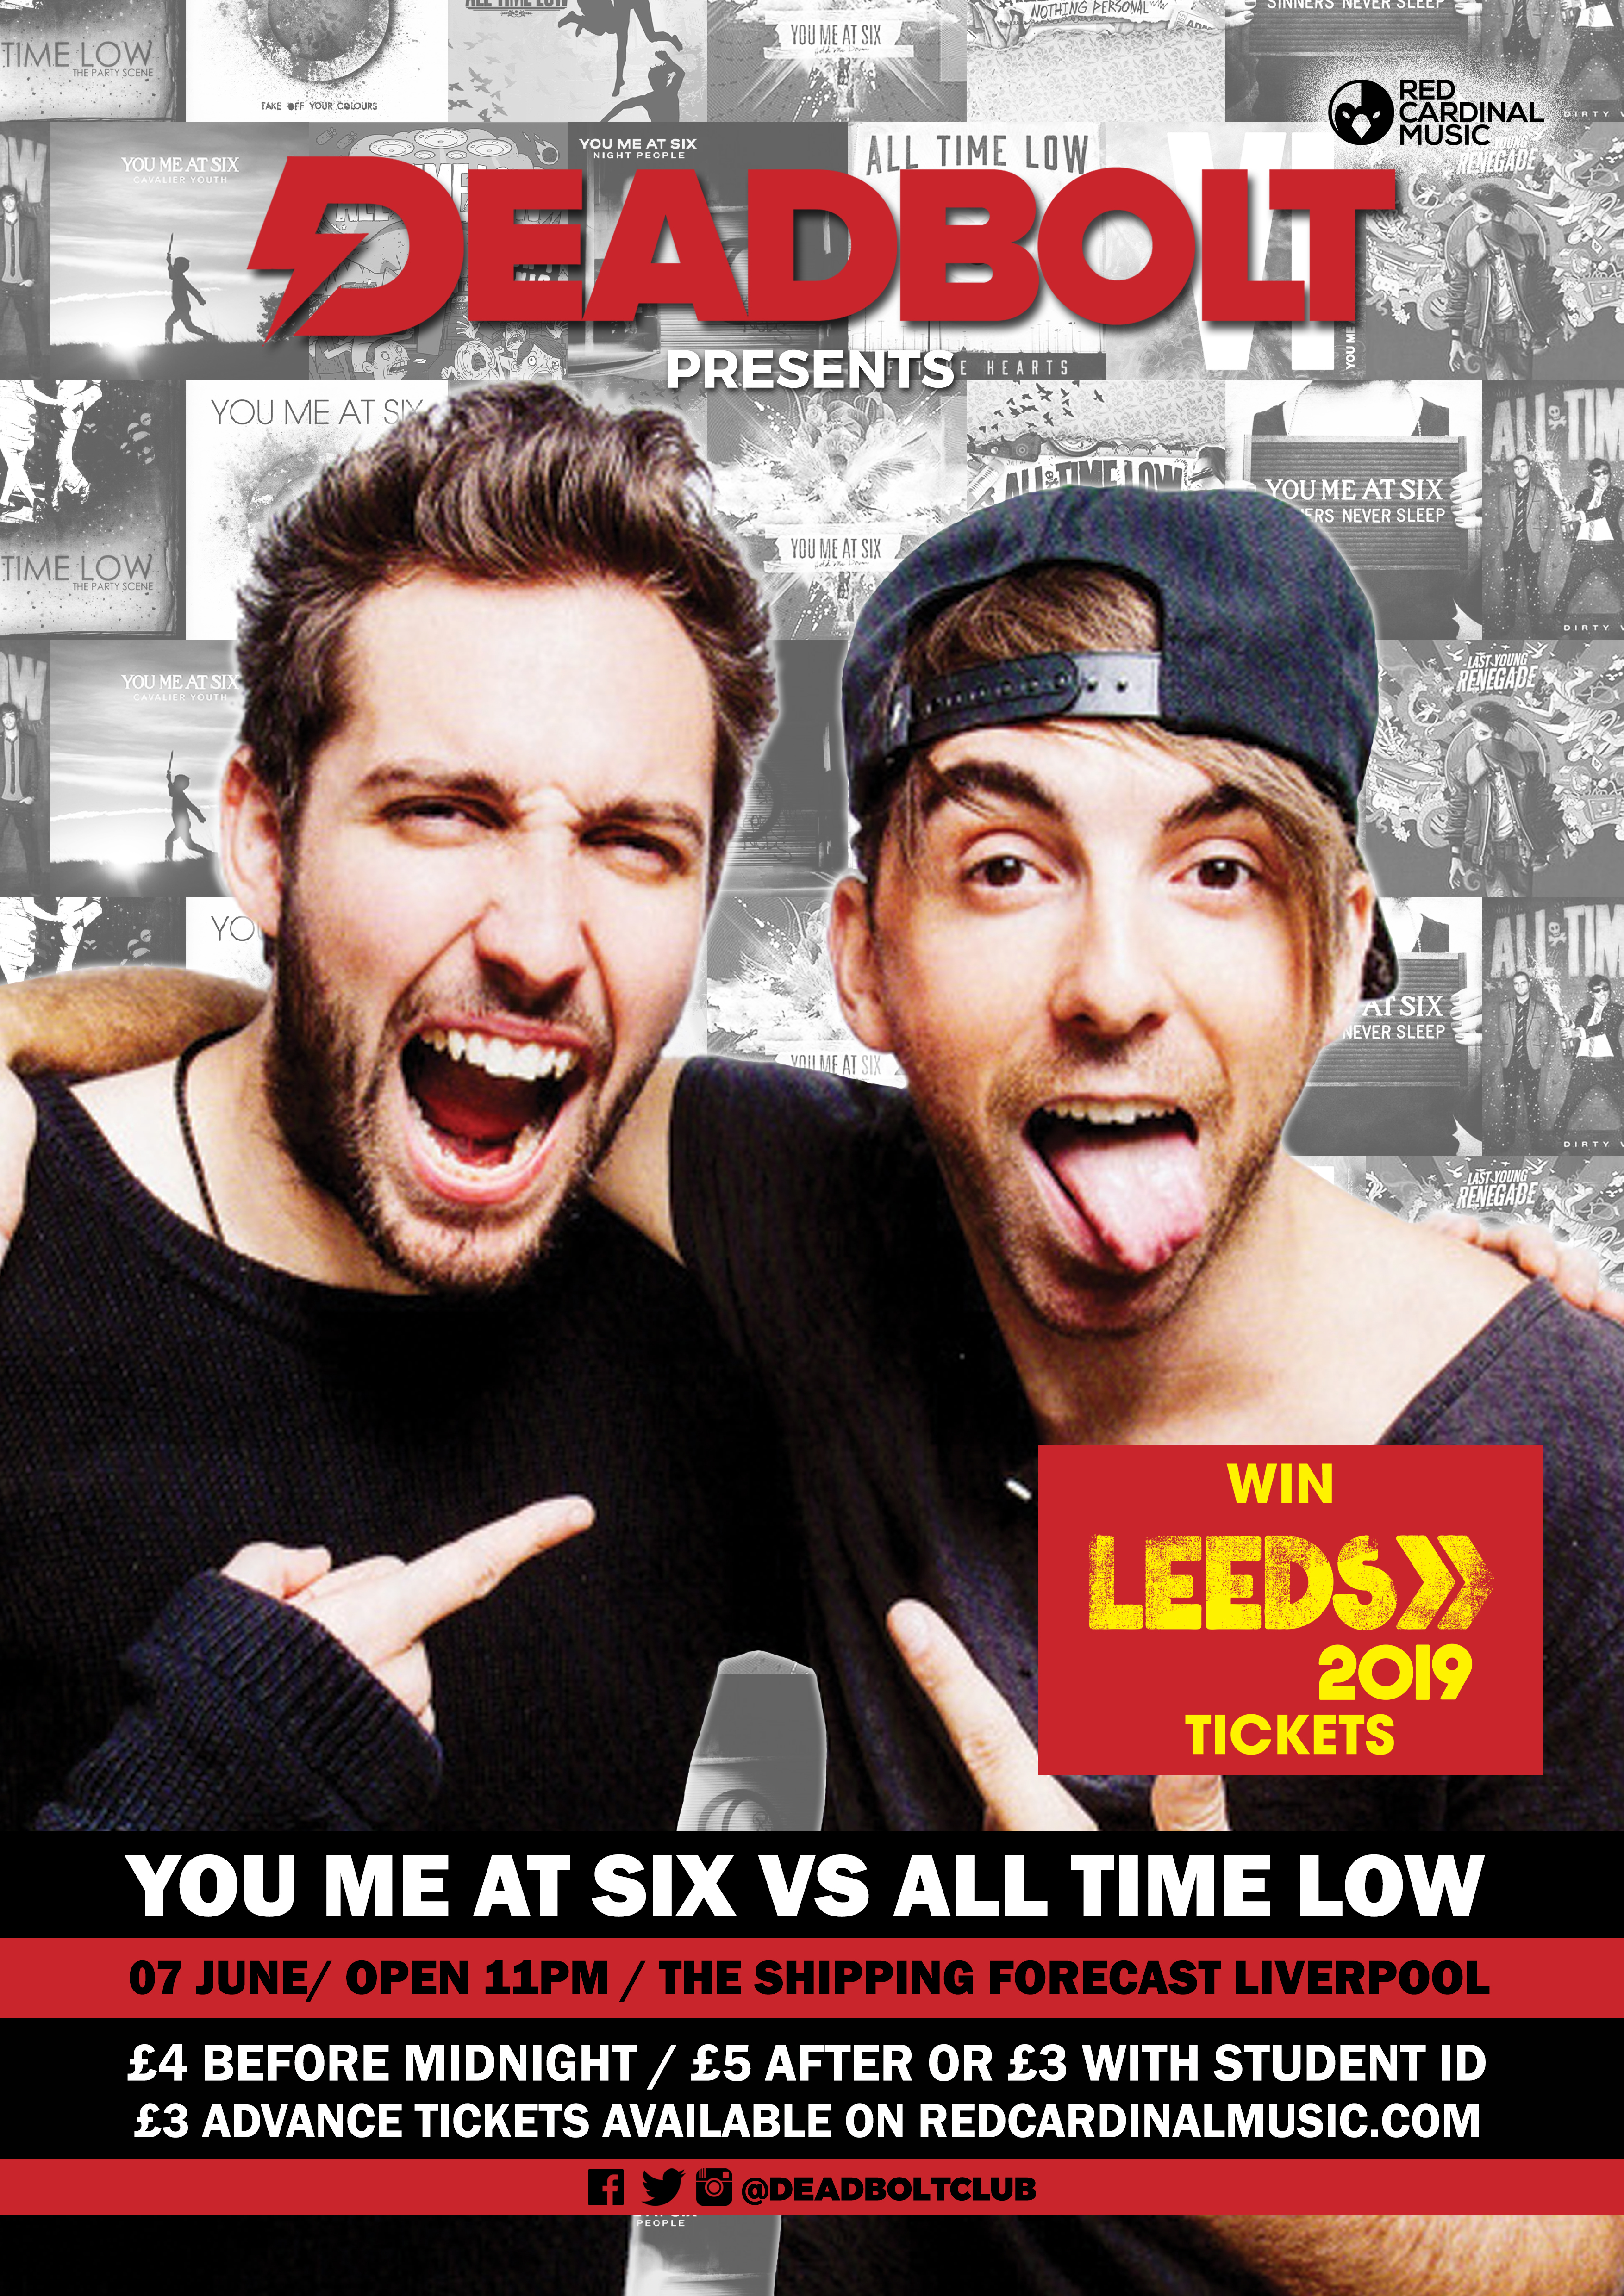 Deadbolt Liverpool - You Me A Six vs All Time Low - The Shipping Forecast Liverpool - Win Leeds Festival Tickets - 07 Jun 19 - Red Cardinal Music